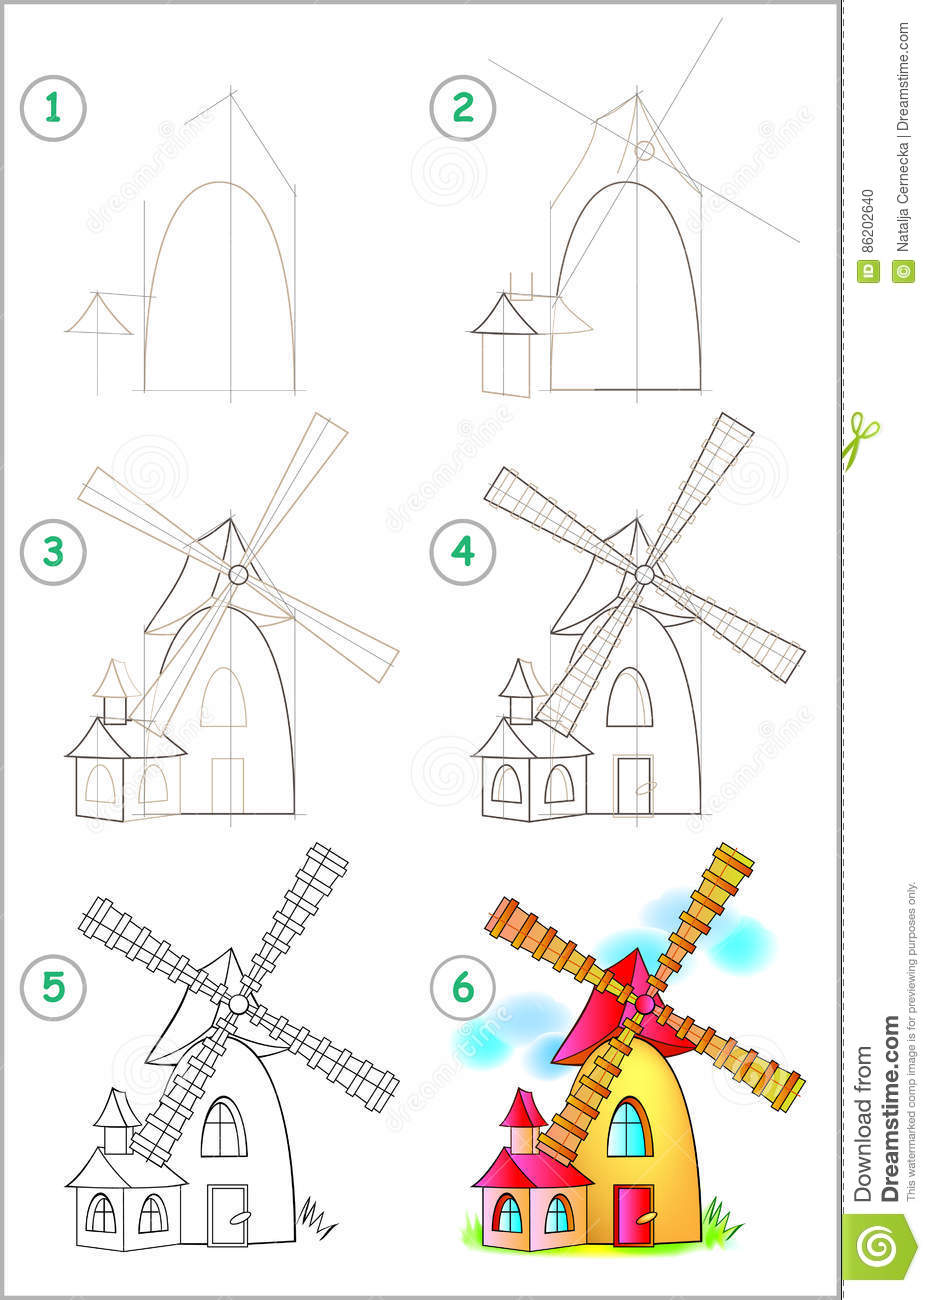 page shows how to learn step by step to draw a windmill developing children skills for drawing and coloring